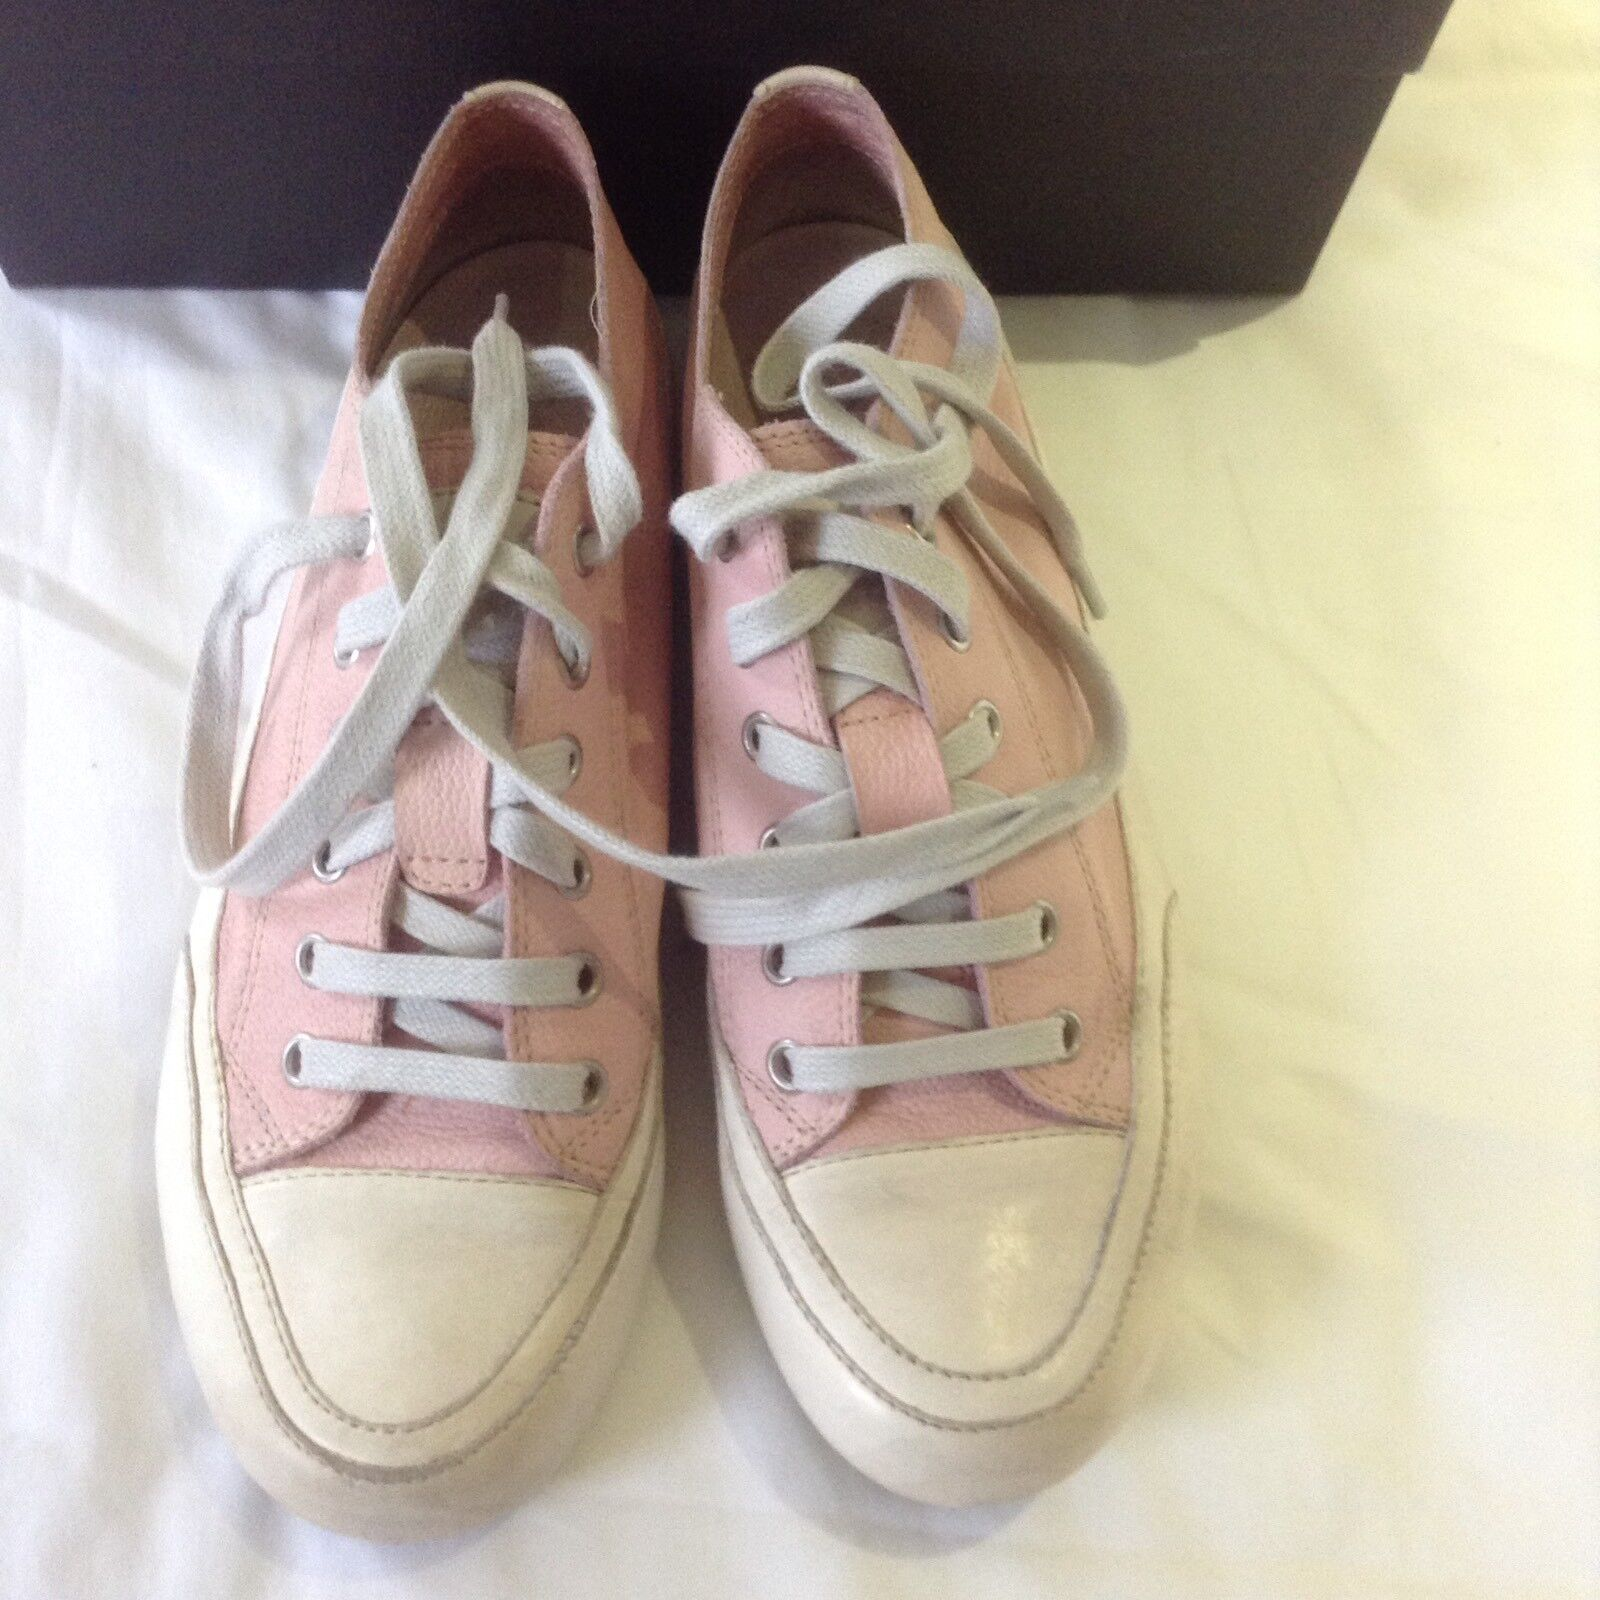 CANDICE COOPER RISO PINK TRAINERS SIZE 38/UK 5